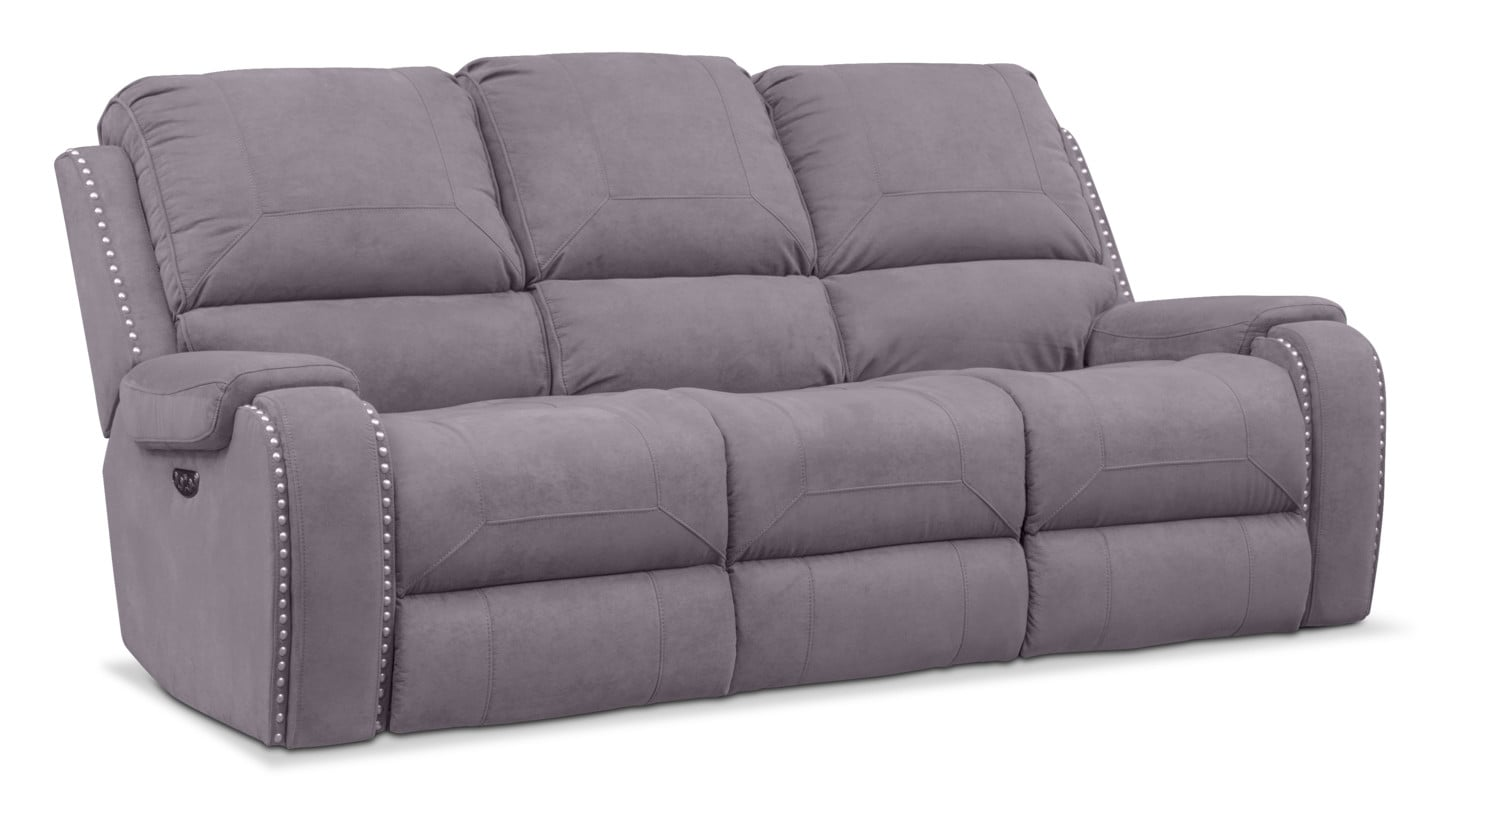 Sofa With Recliner Austin Dual Power Reclining Sofa Reclining Loveseat And Recliner Set